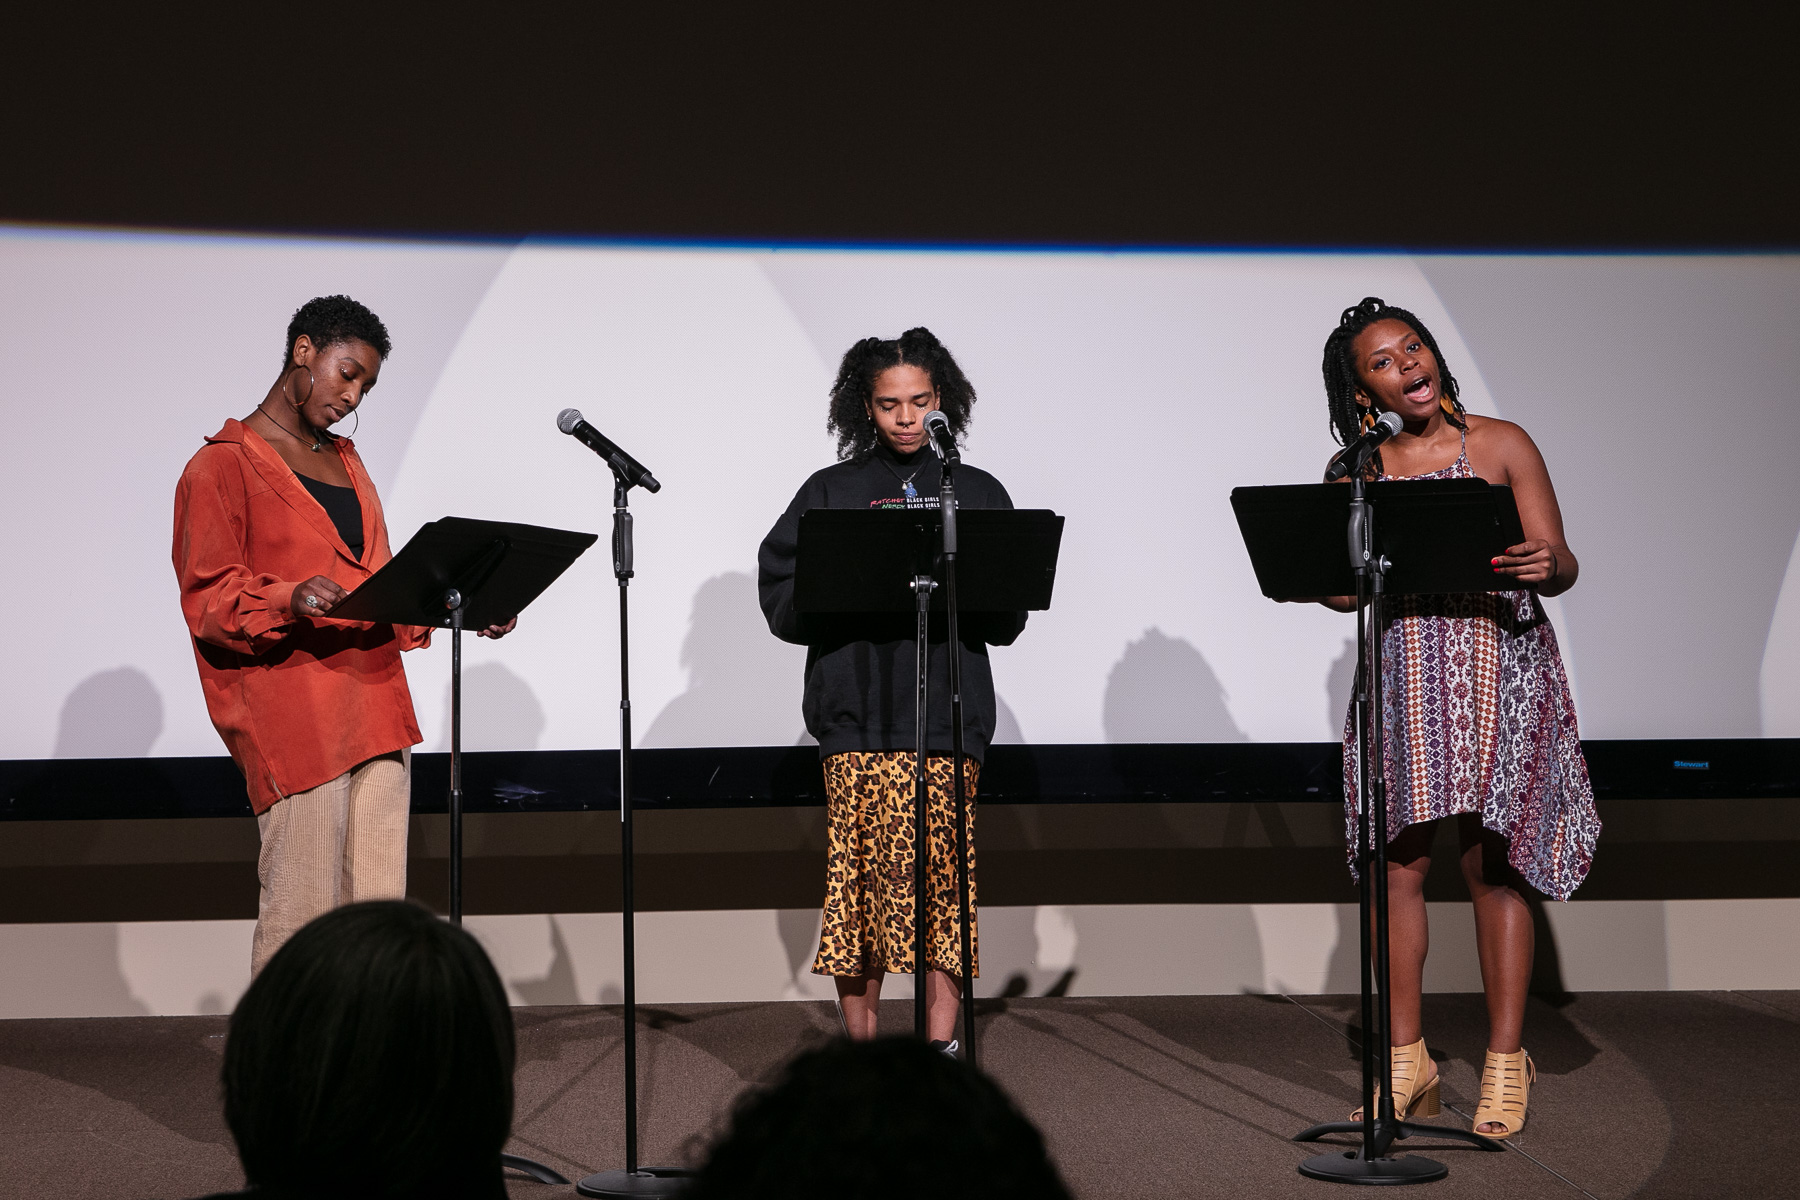 Students from The Theatre School performed a spoken word piece reflecting on Black History Month. From left to right, Jasmine Rush, Gabriella Mendoza and Kidjie Boyer. (DePaul University/Randall Spriggs)